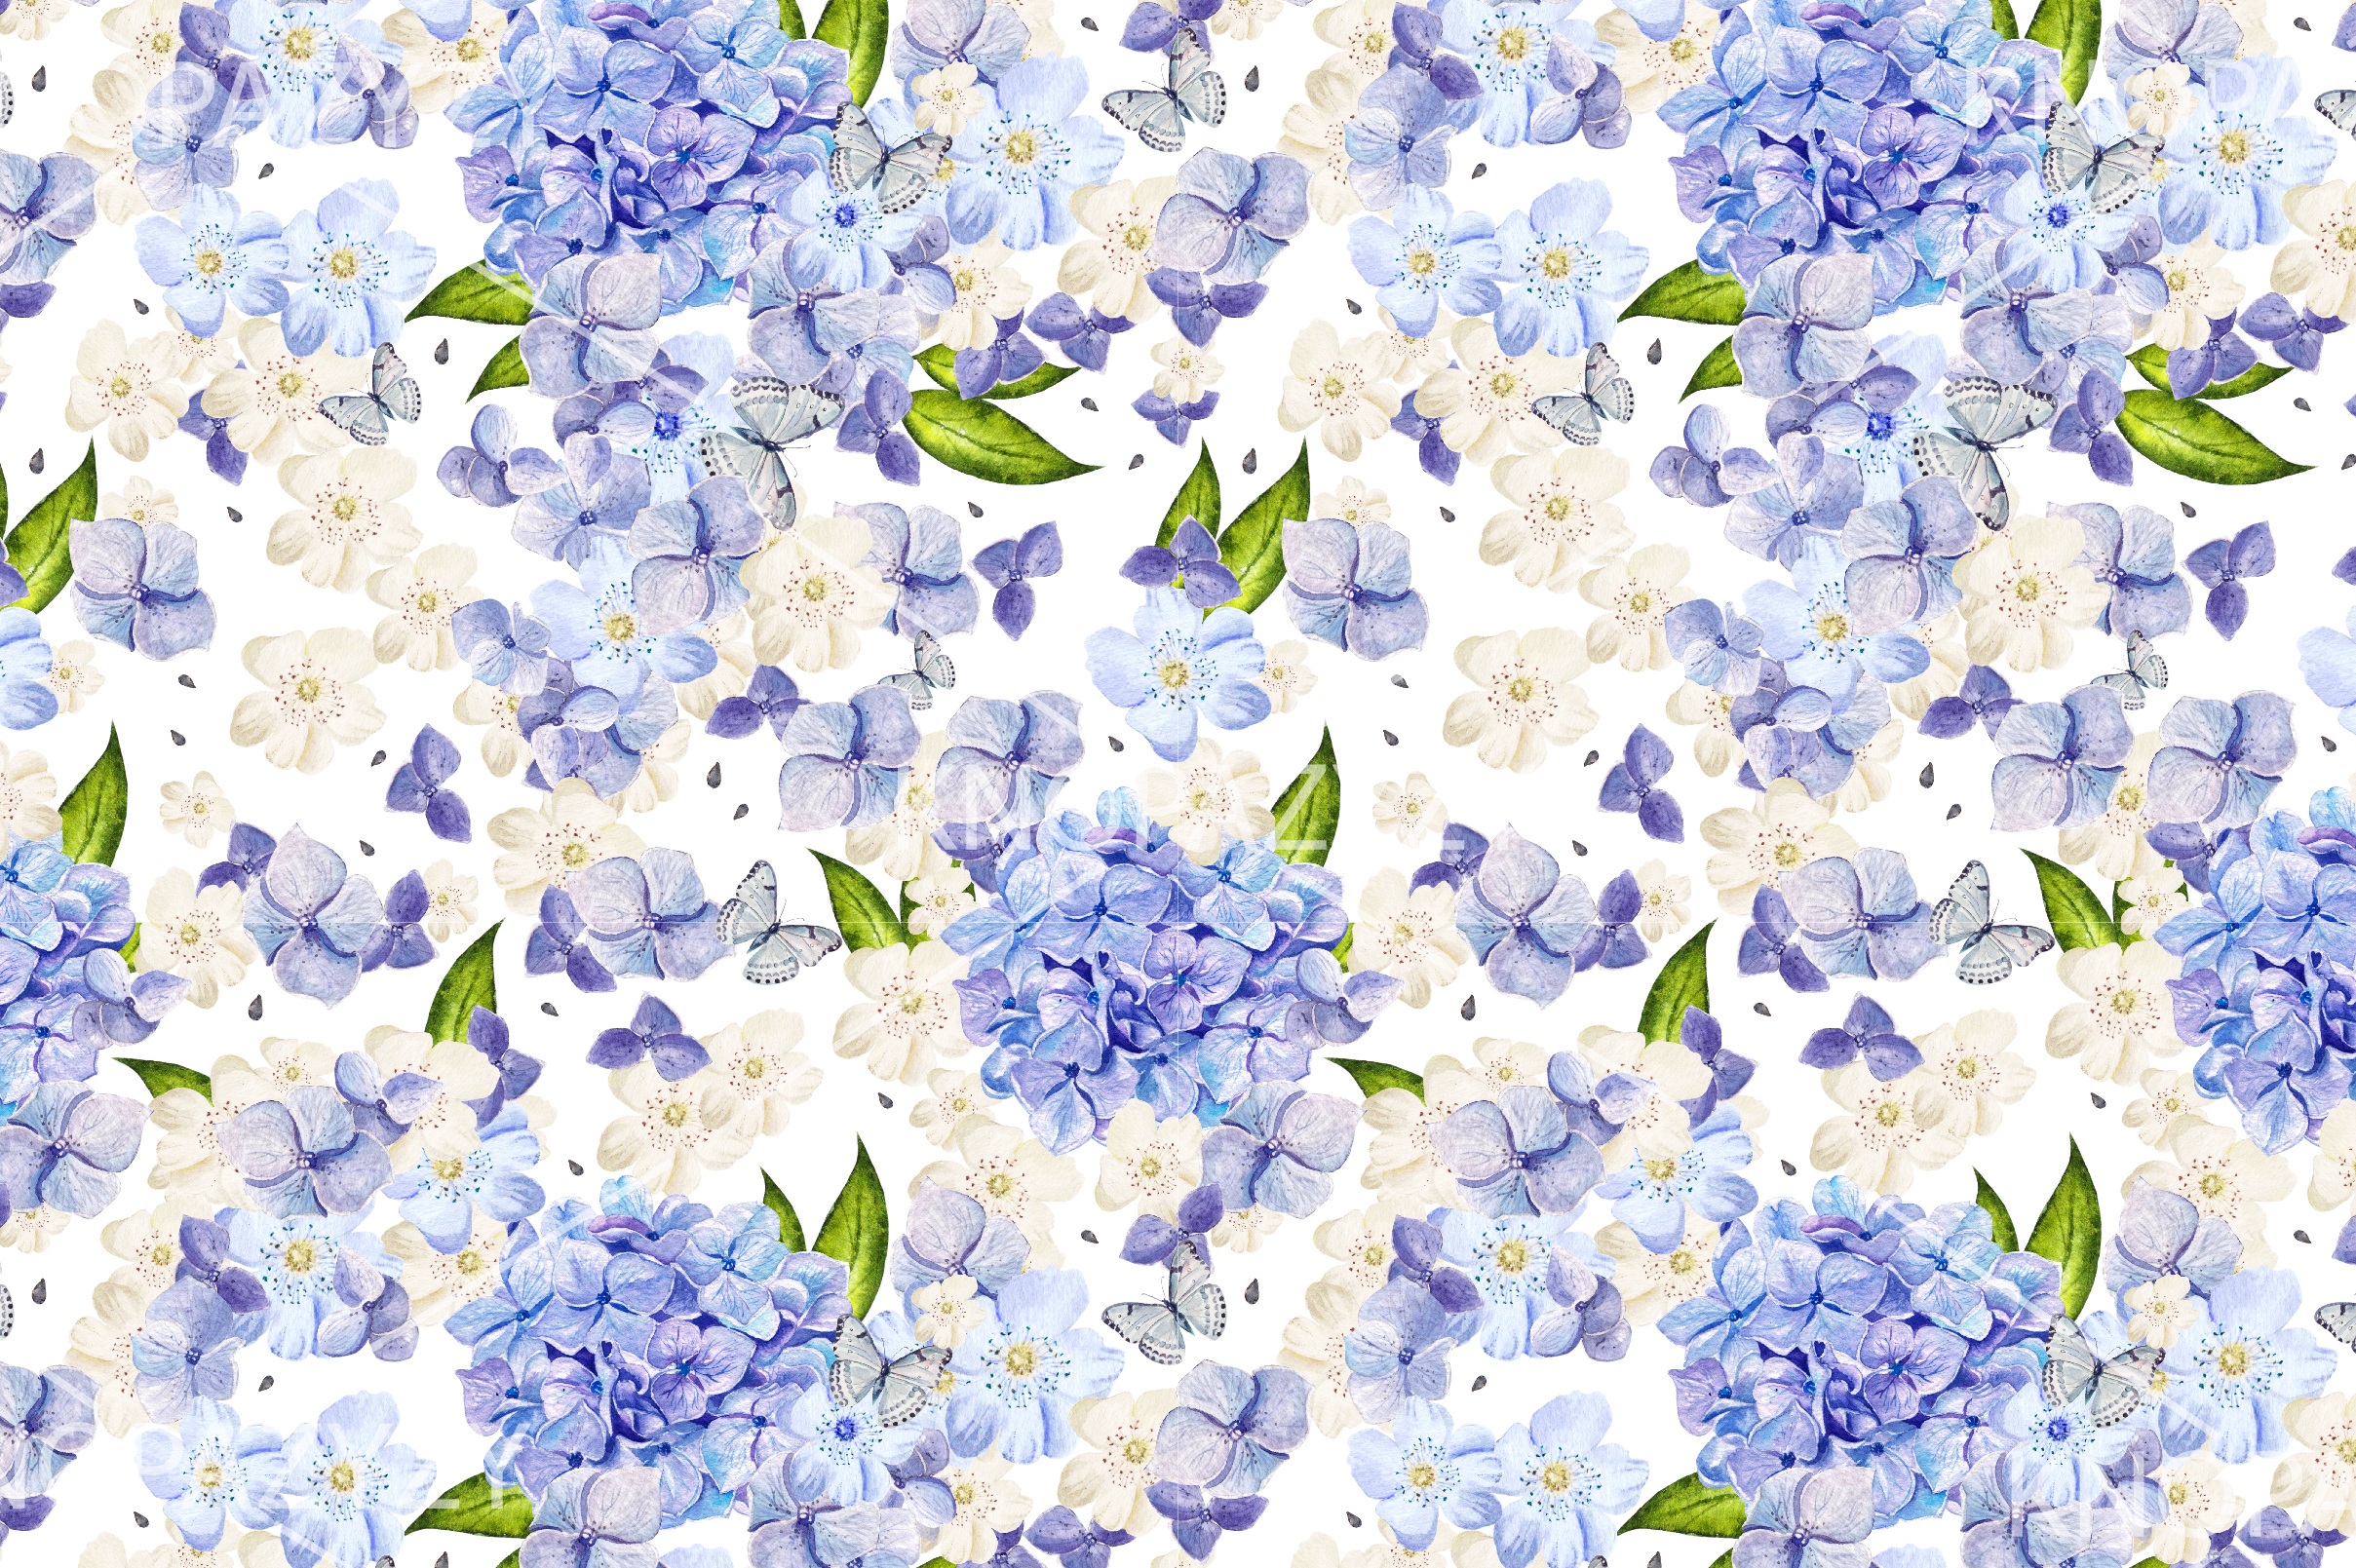 15 Hand Drawn Watercolor PATTERNS example image 8